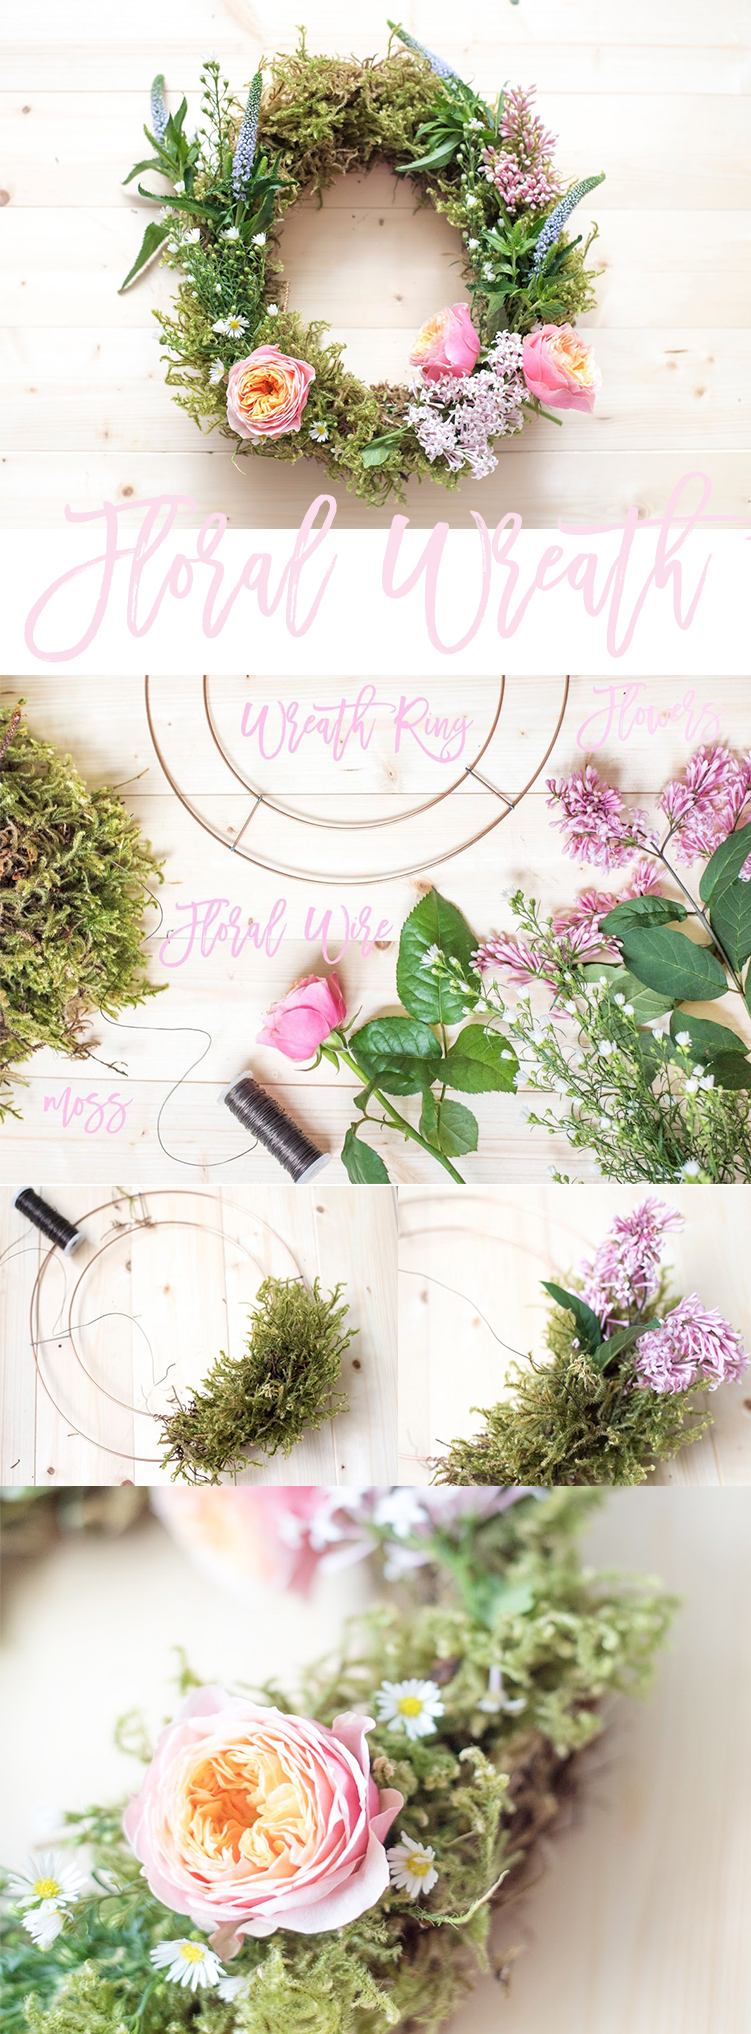 Floral Wreath tutorial DIY